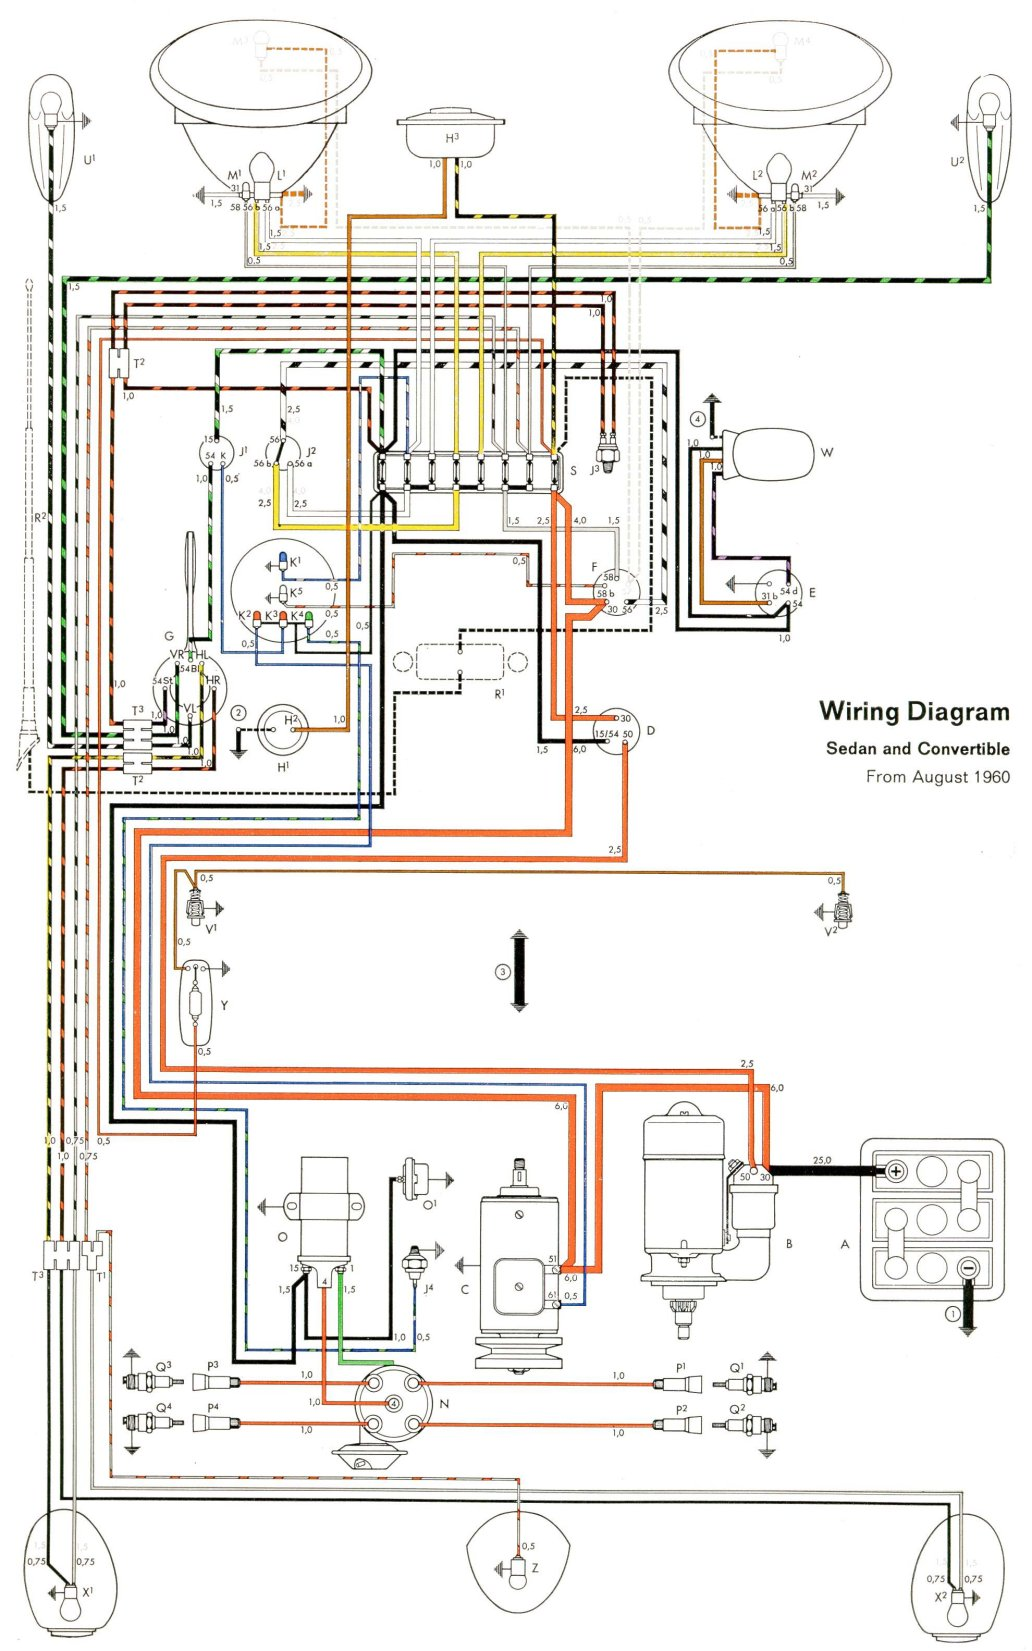 bug_61 thesamba com type 1 wiring diagrams 1965 vw beetle wiring diagram at edmiracle.co